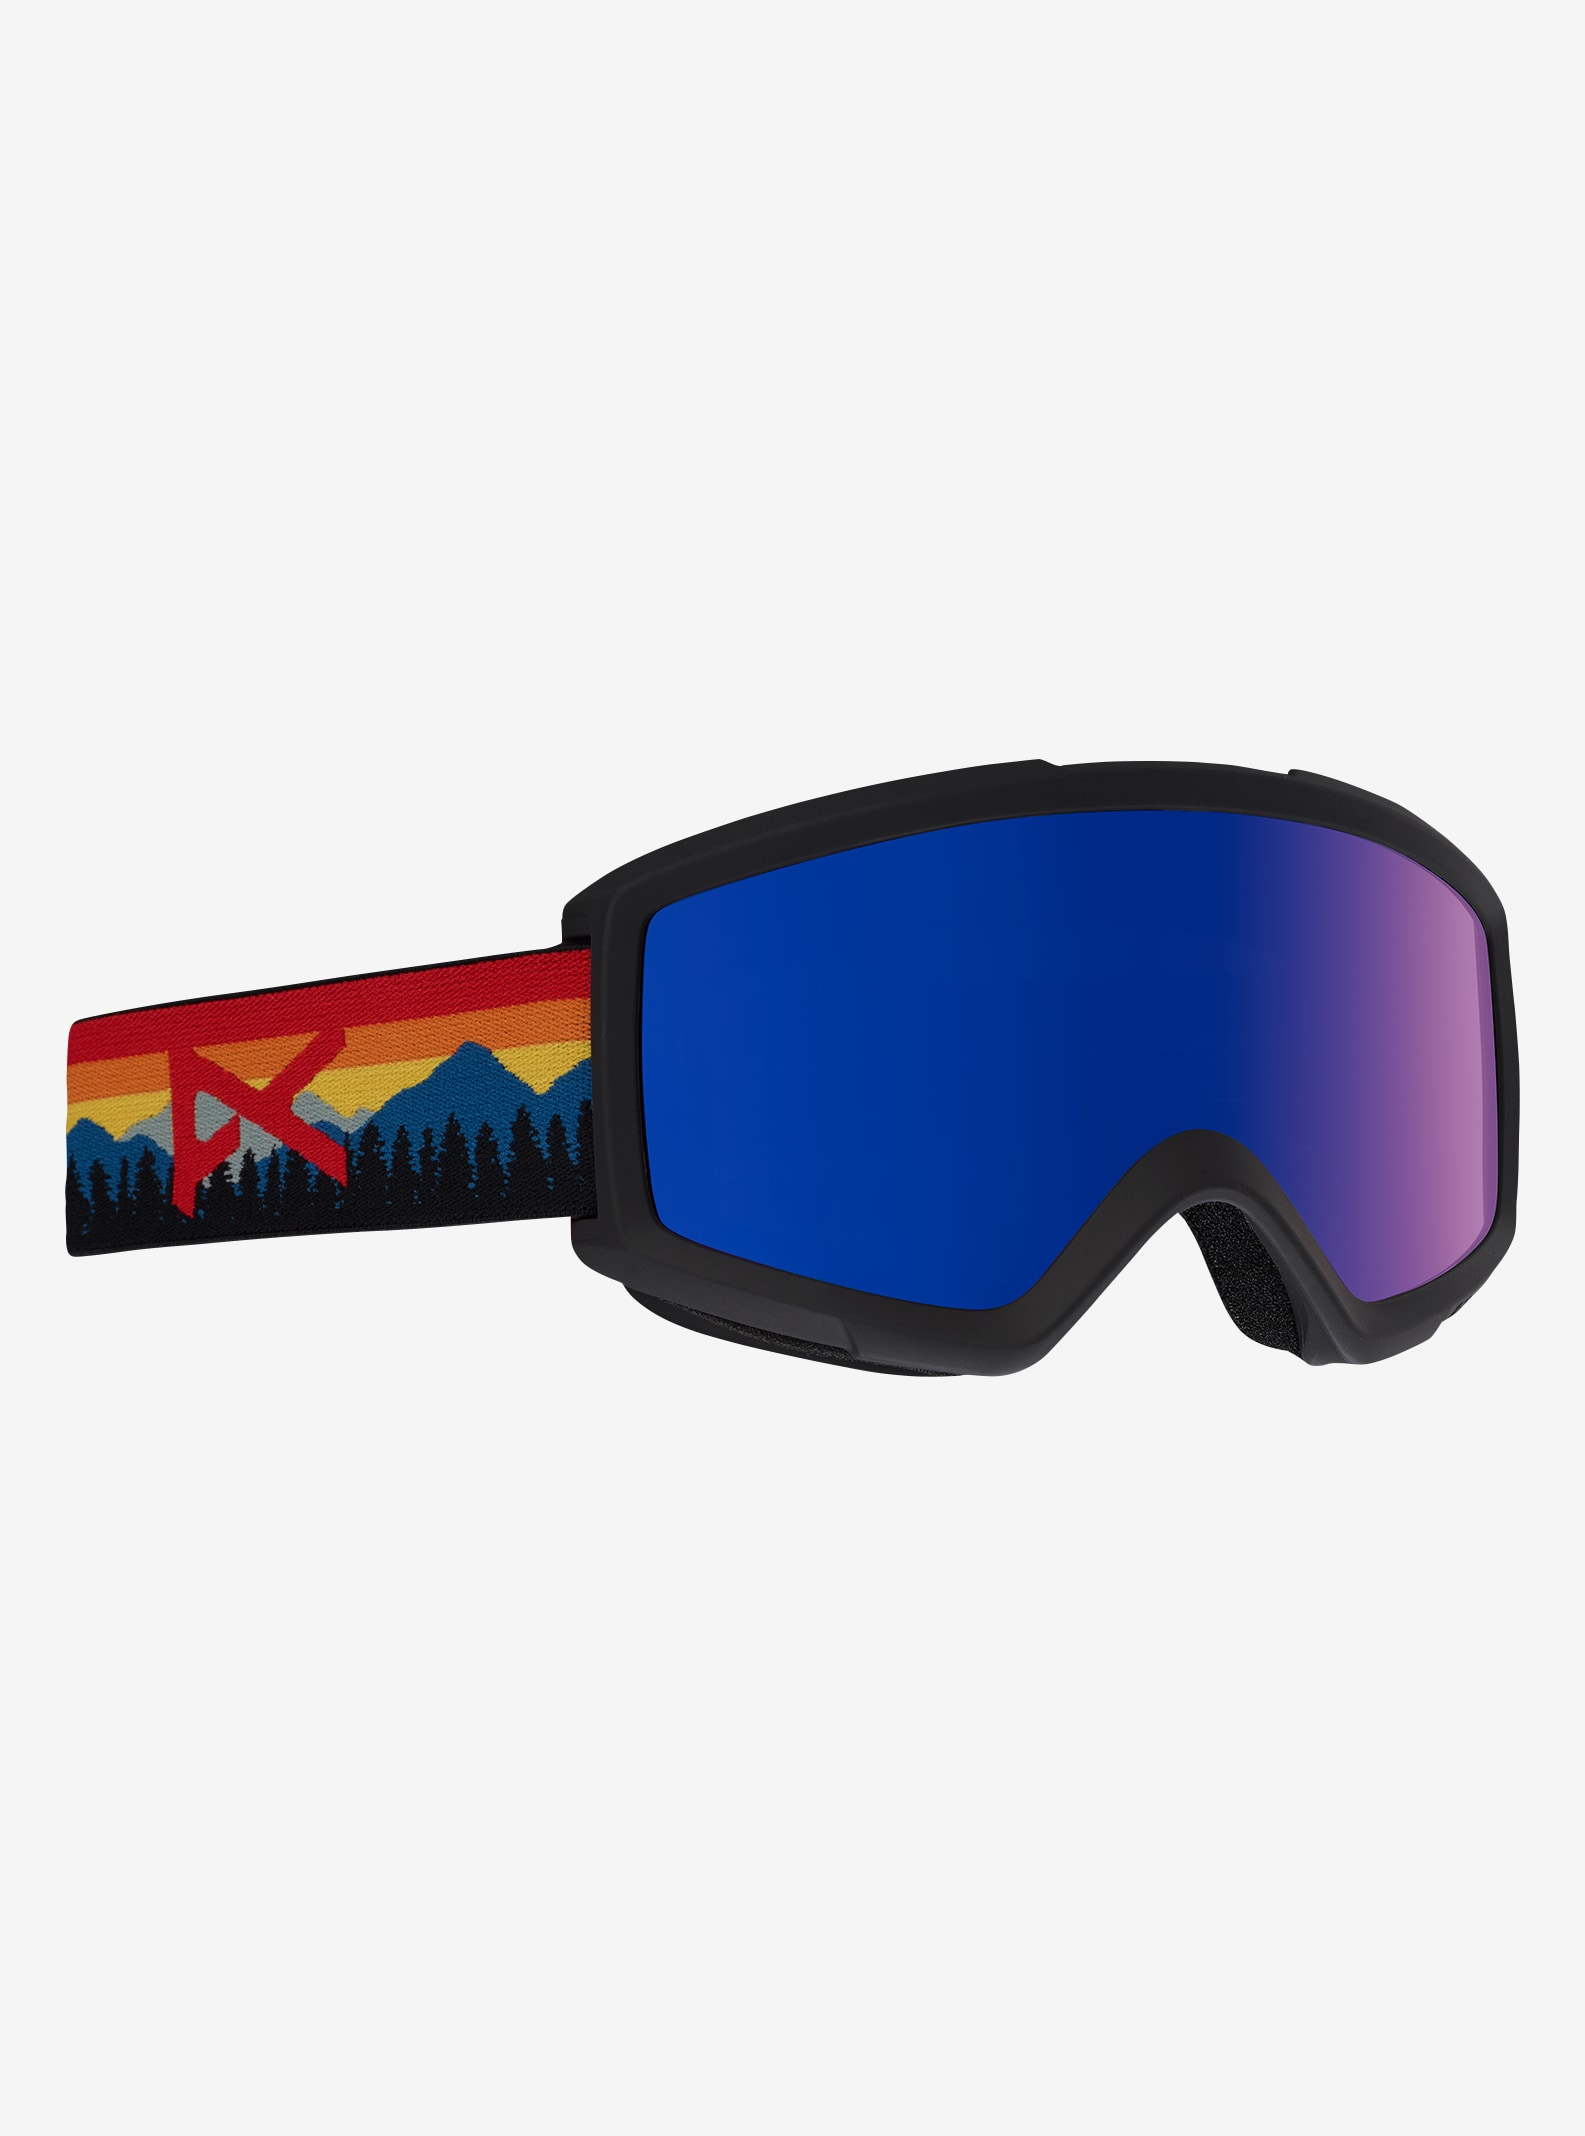 Men's Anon Helix 2.0 Goggle shown in Frame: Range Orange, Lens: Blue Cobalt, Spare Lens: Amber